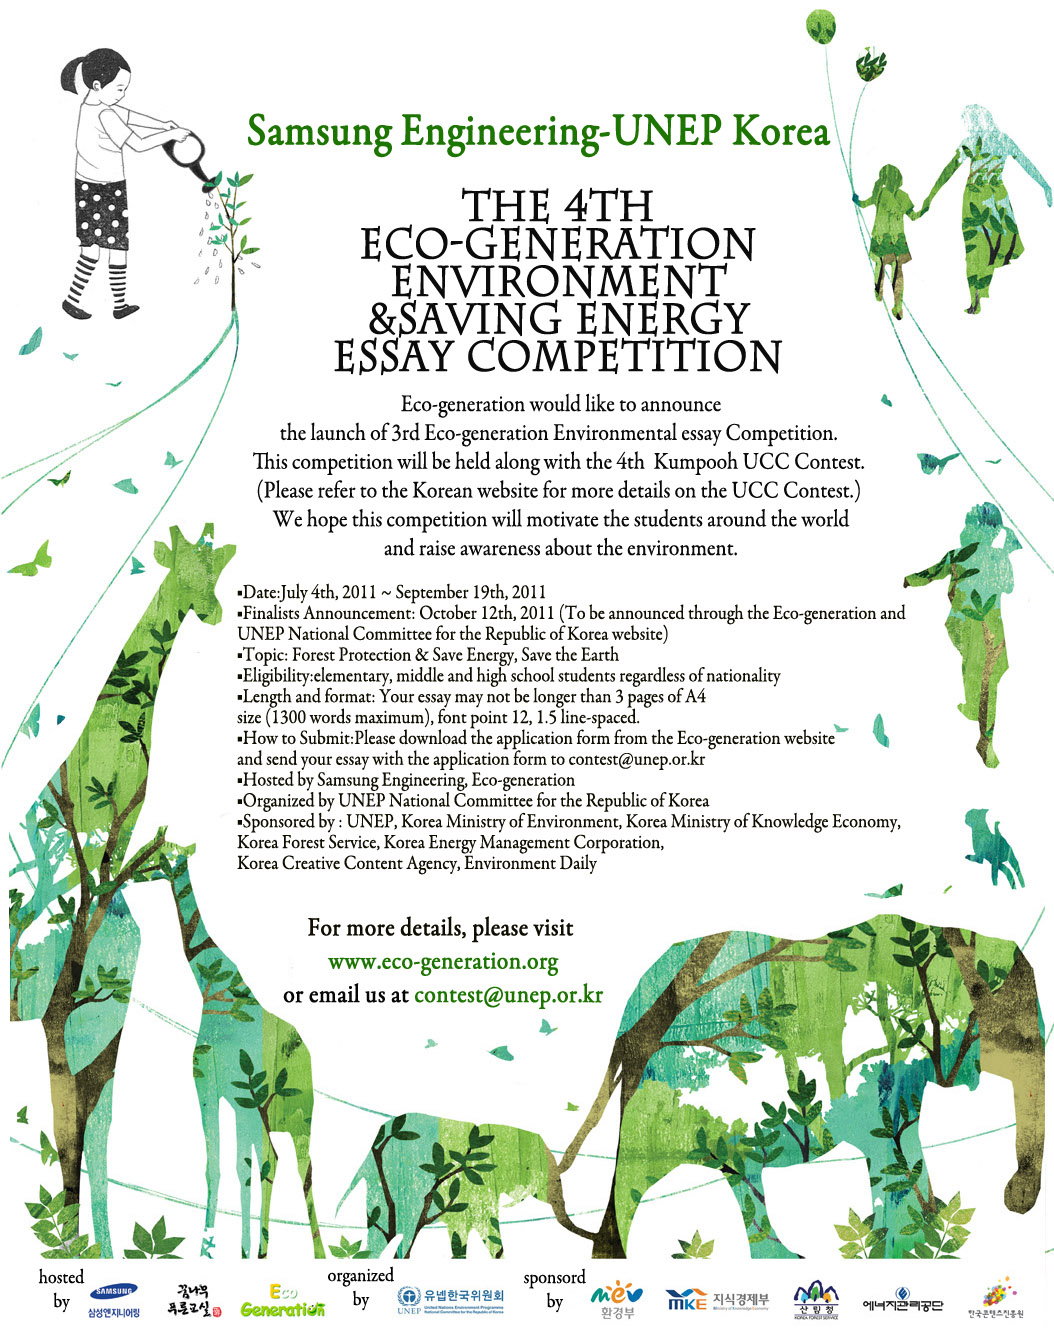 the nature of global competition essay The nature of global competition essay sample global competition has been a vital reality in successful business since the ancient times a primary example of global competition from this time is that of the spice trade asia arab traders were mainly the transporters of goods, ie the spice trade, through levant and venetian merchants to europe.